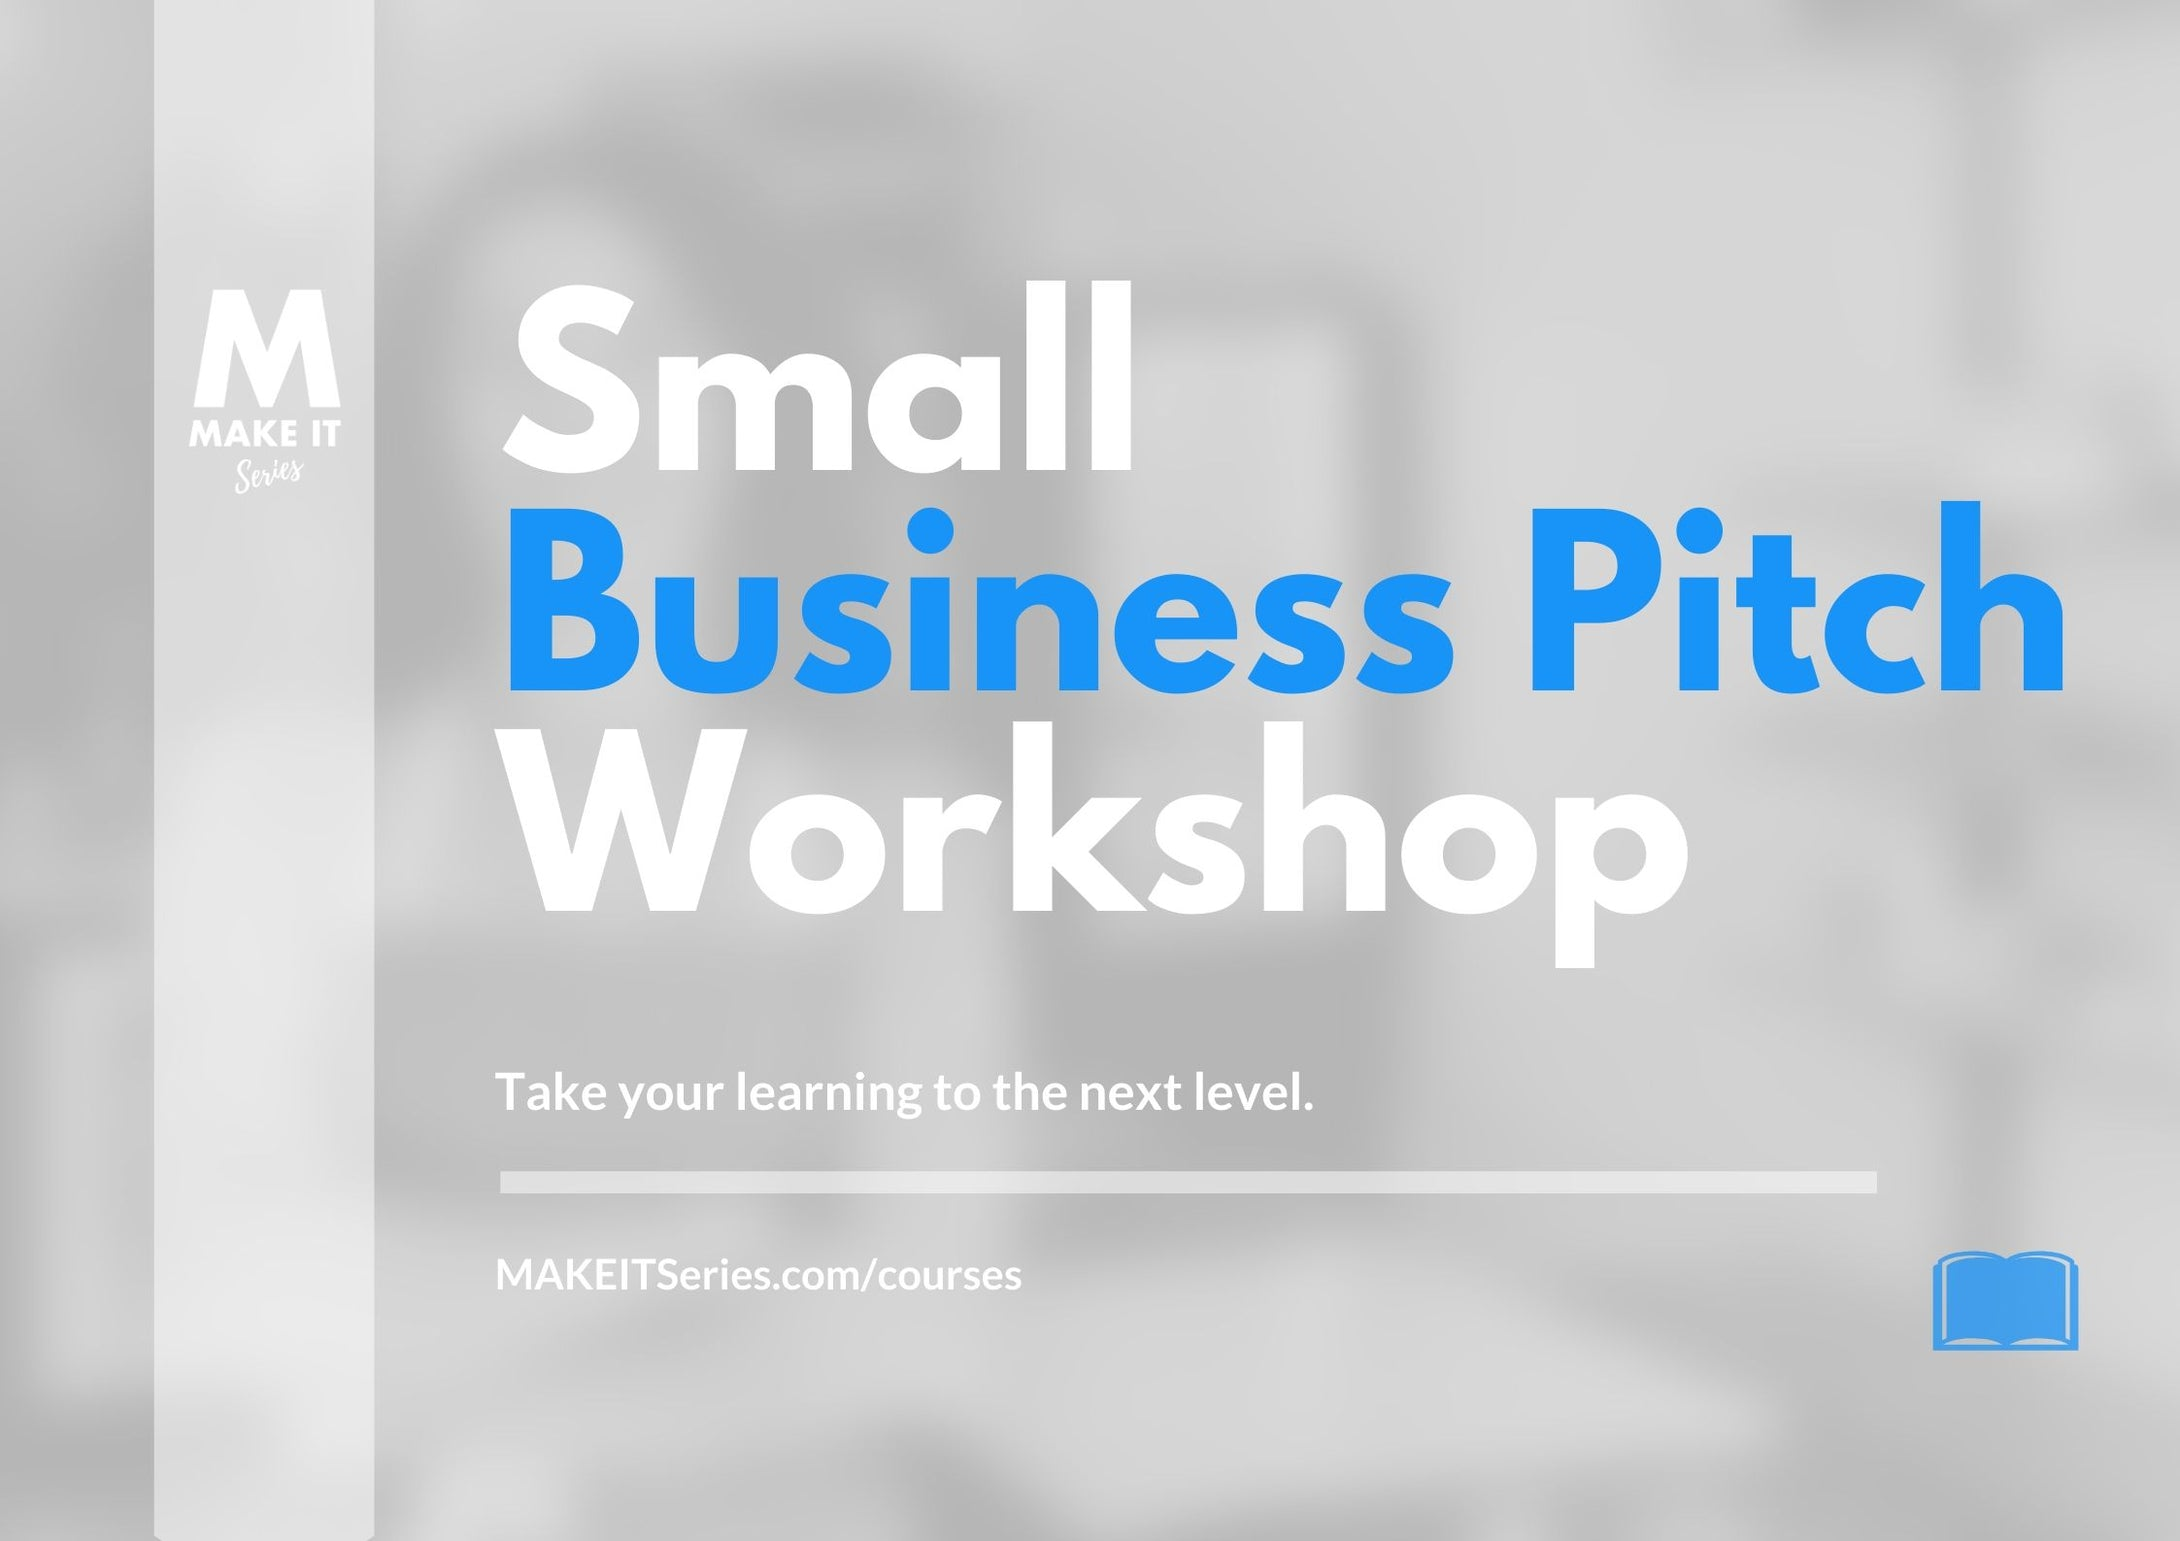 Small Business Pitch Workshop